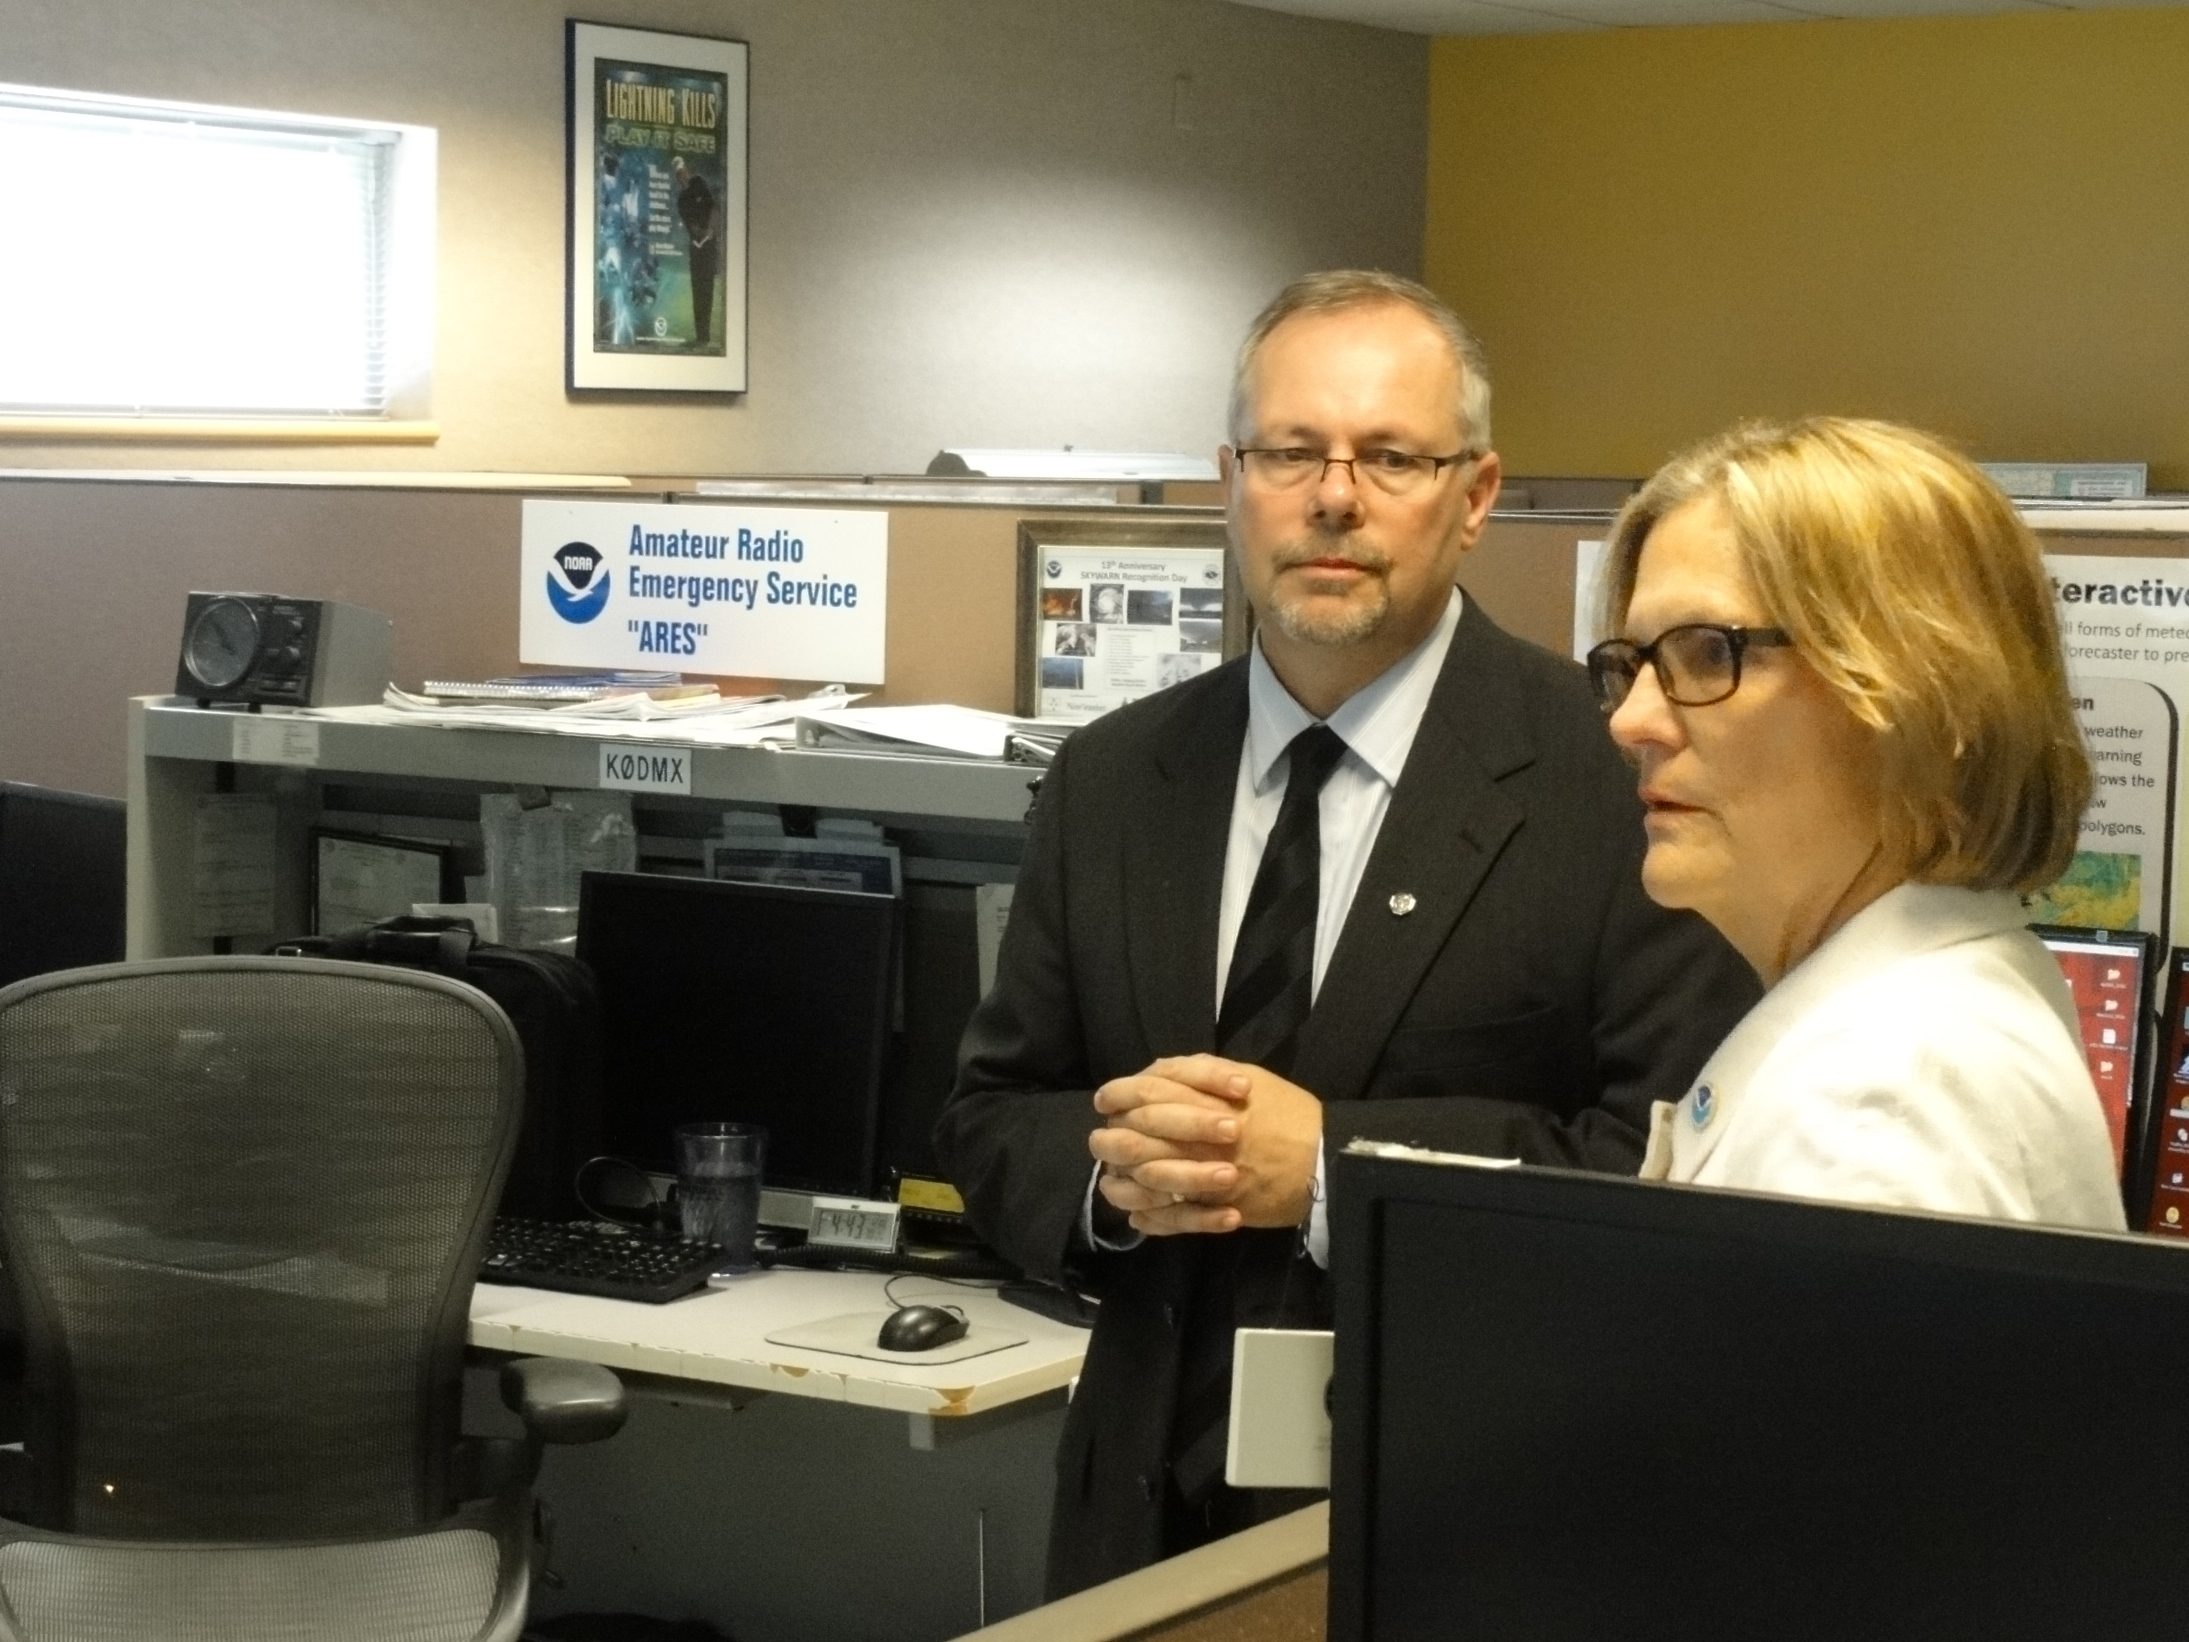 Visiting NWS Des Moines operations. Jeff Johnson, NWS Des Moines Acting Meteorologist in Charge; Dr. Kathryn Sullivan, NOAA Administrator and Under Secretary of Commerce for Oceans and Atmosphere